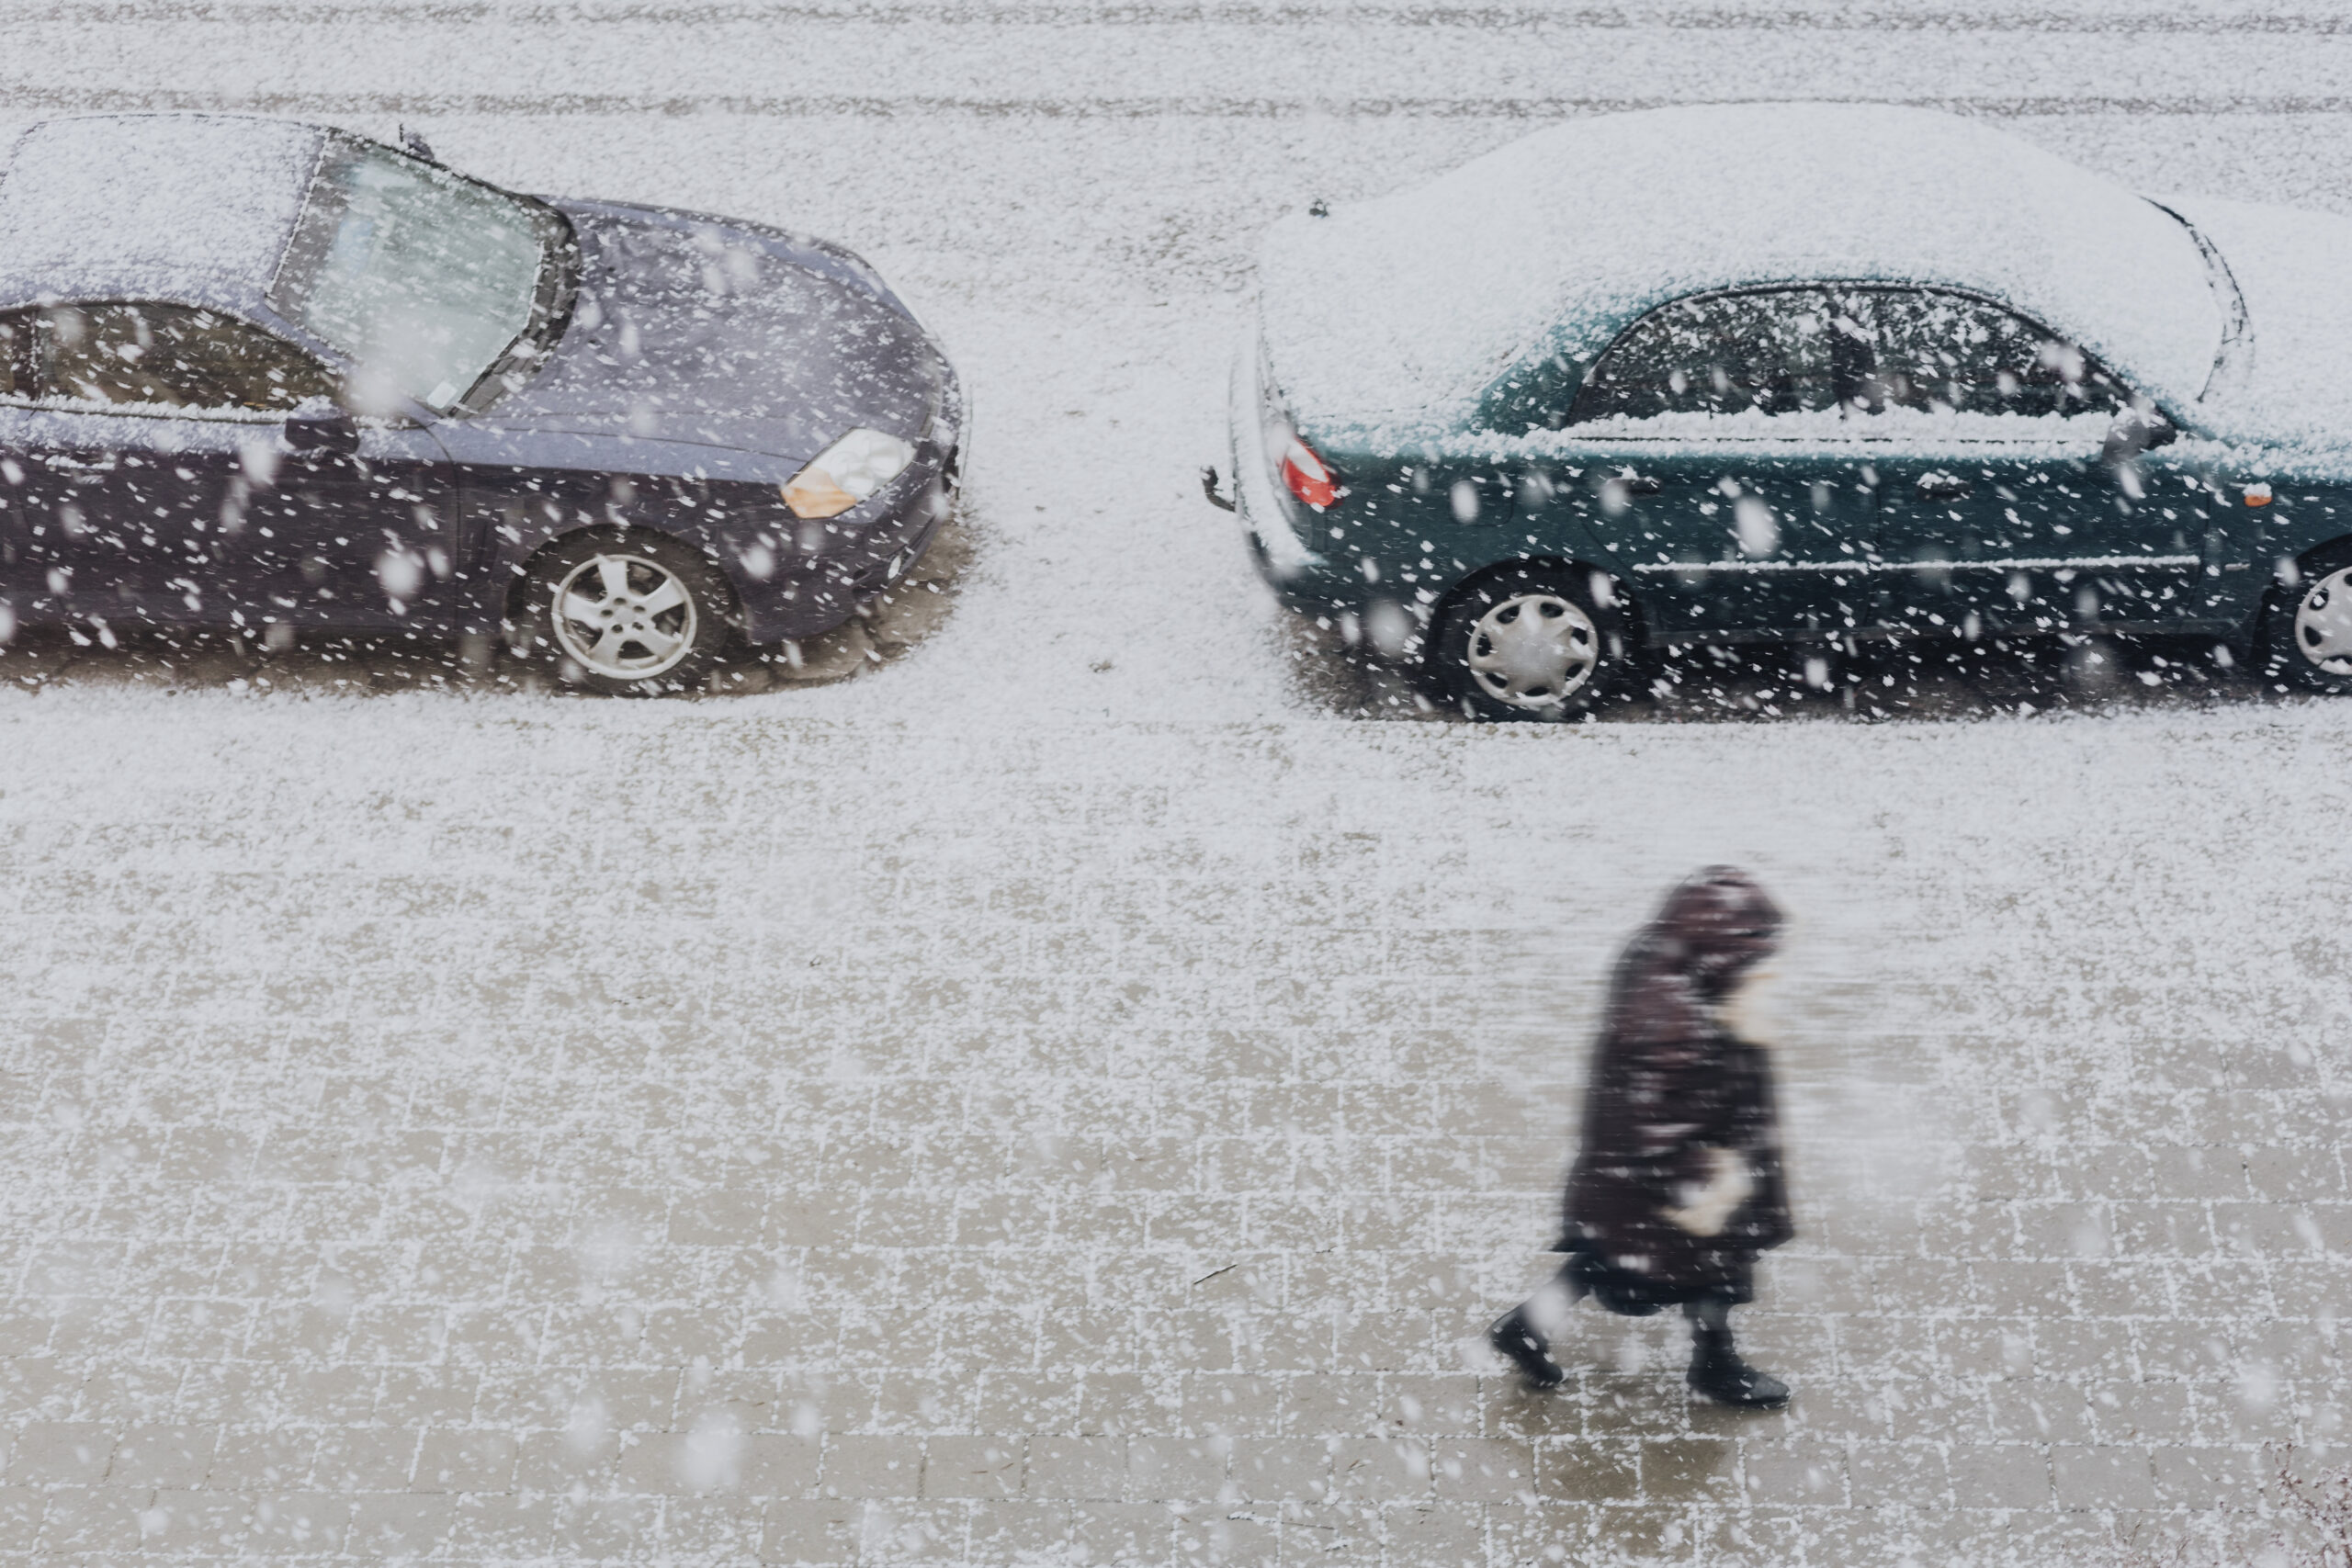 Cars parked in a snow storm